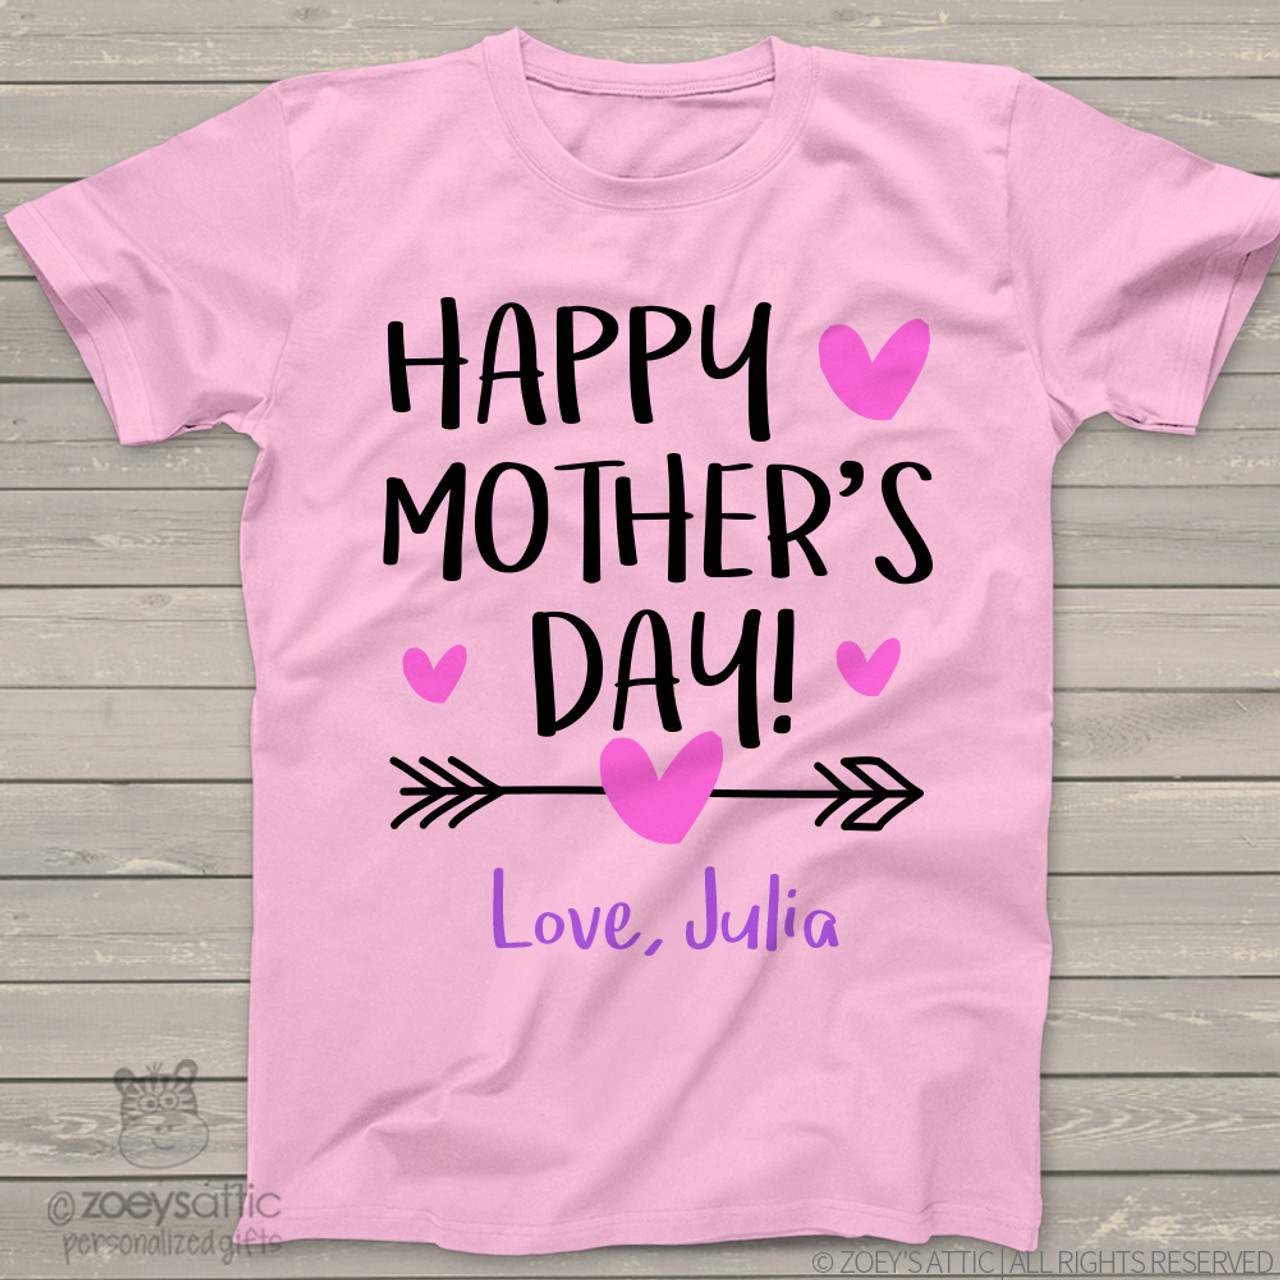 639fb328 girls mothers day tshirt, happy mothers day shirt